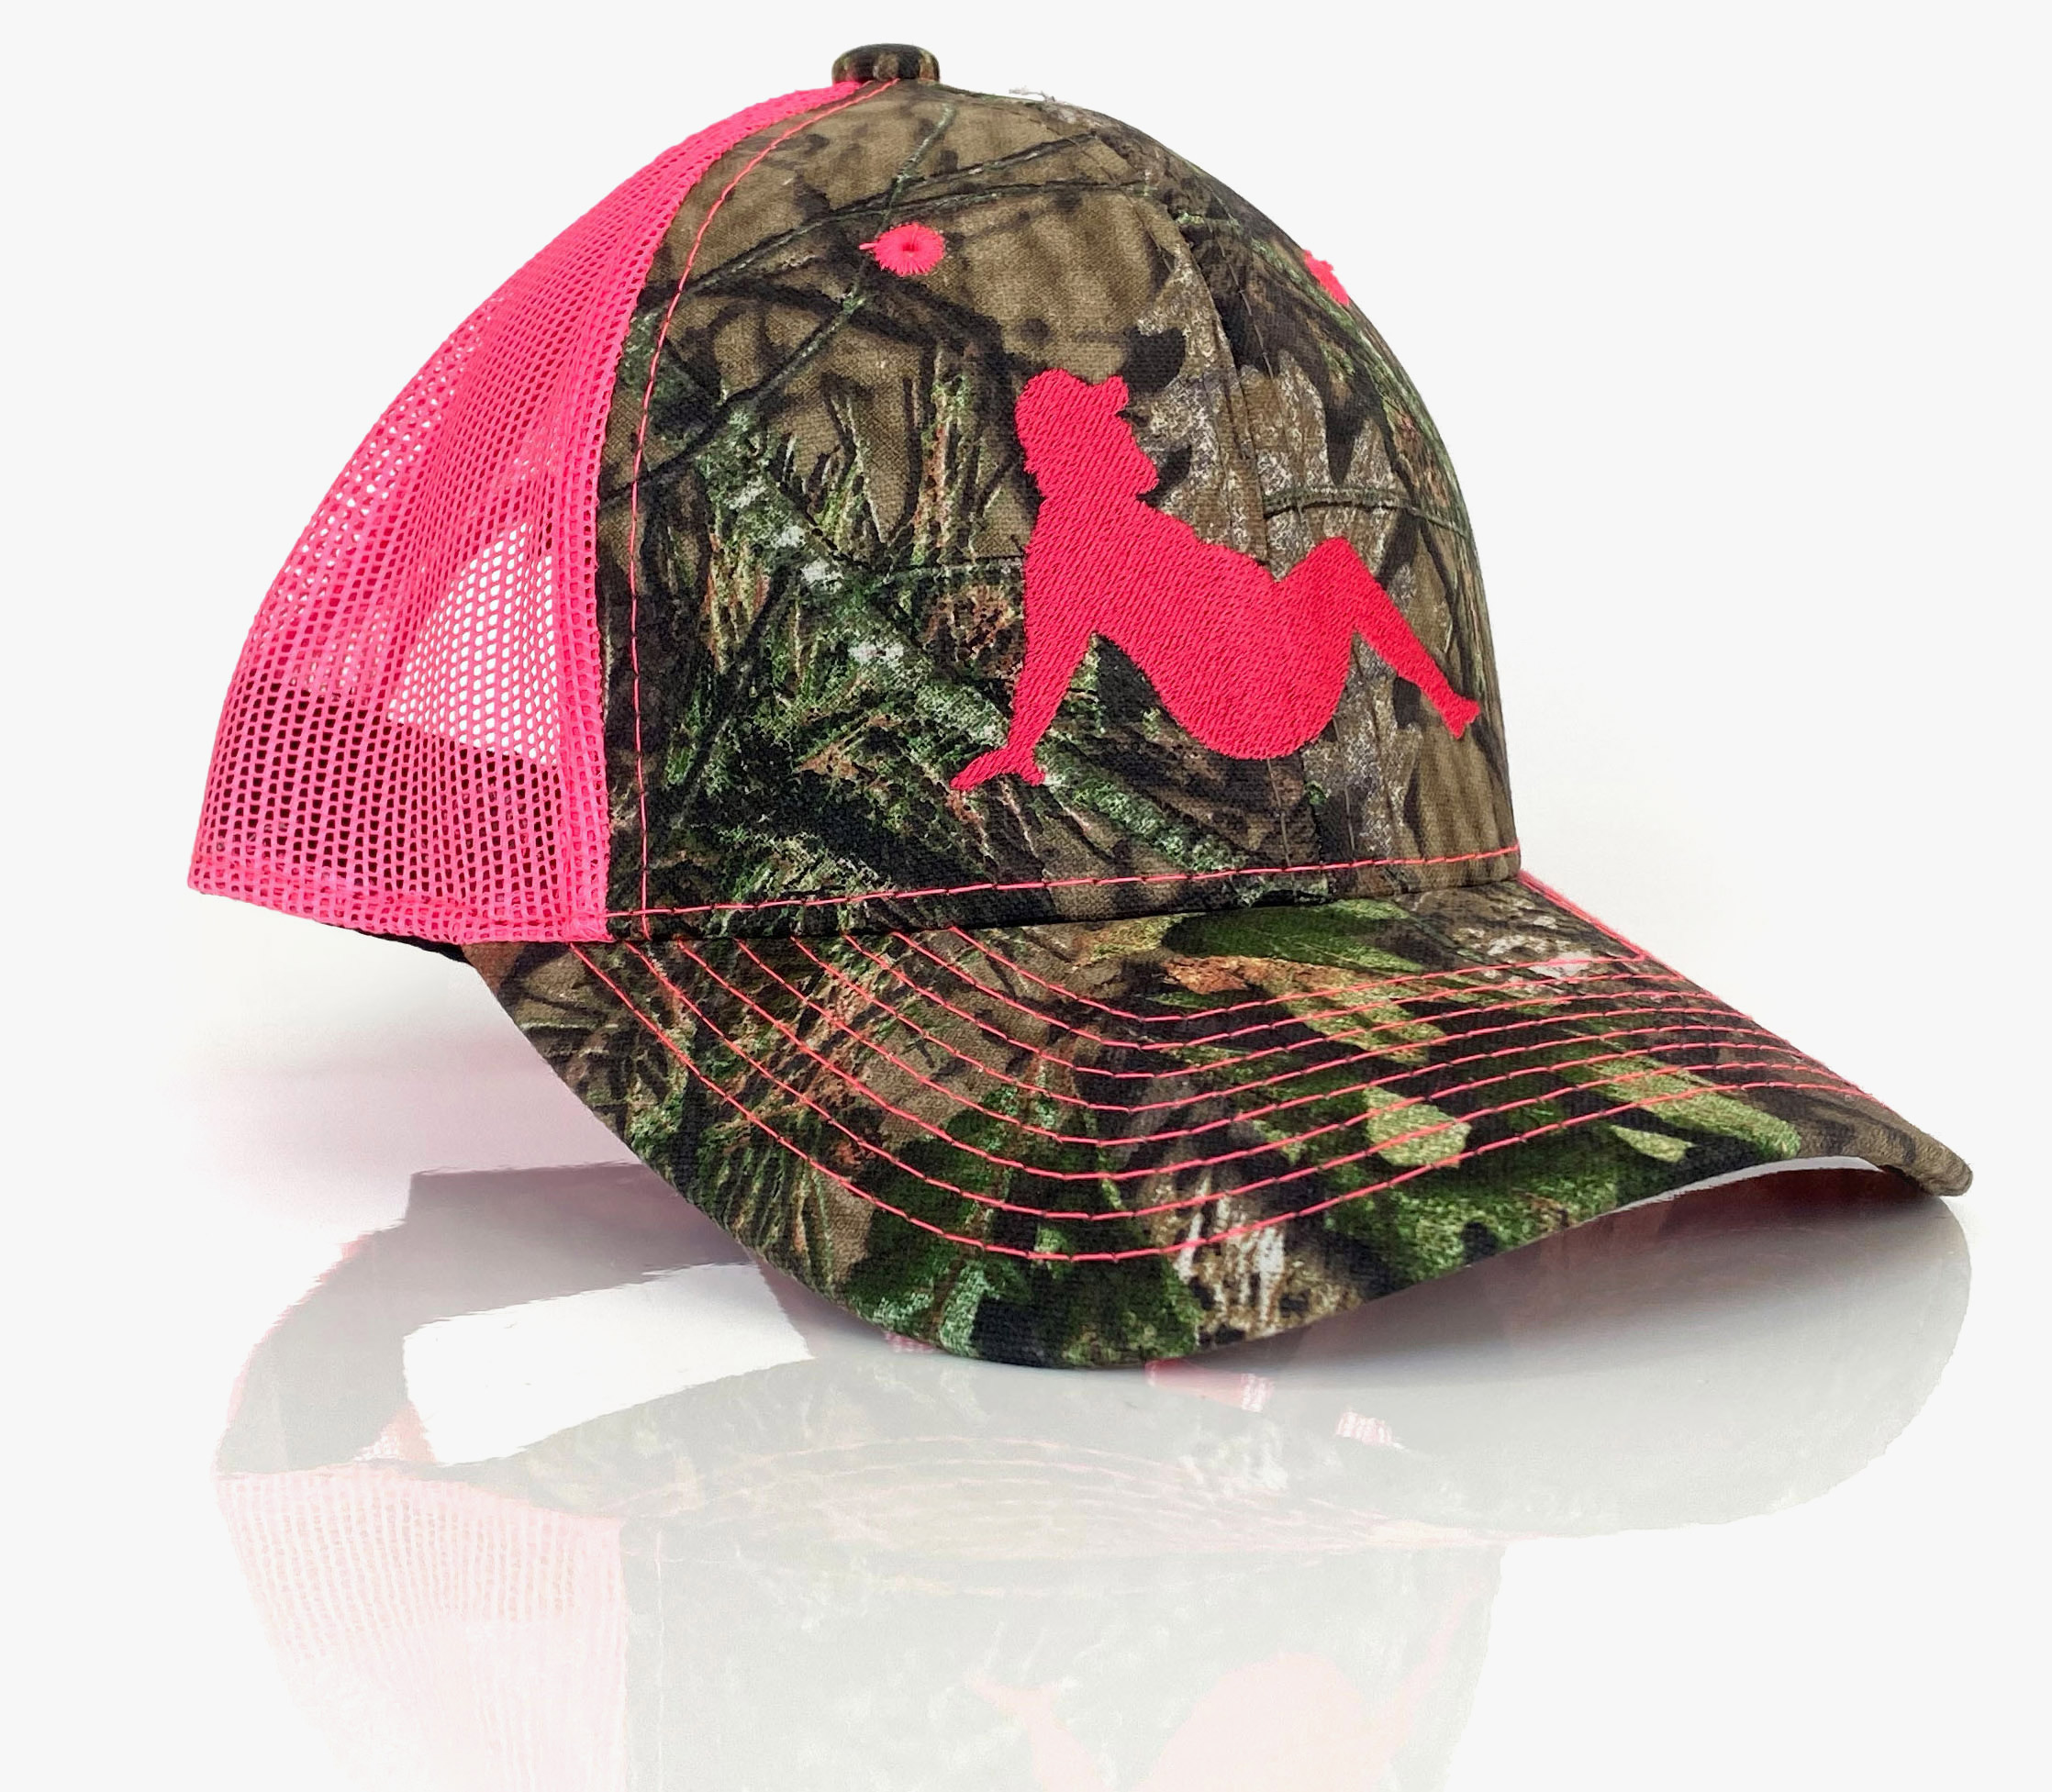 Bubba hat in pink with camo